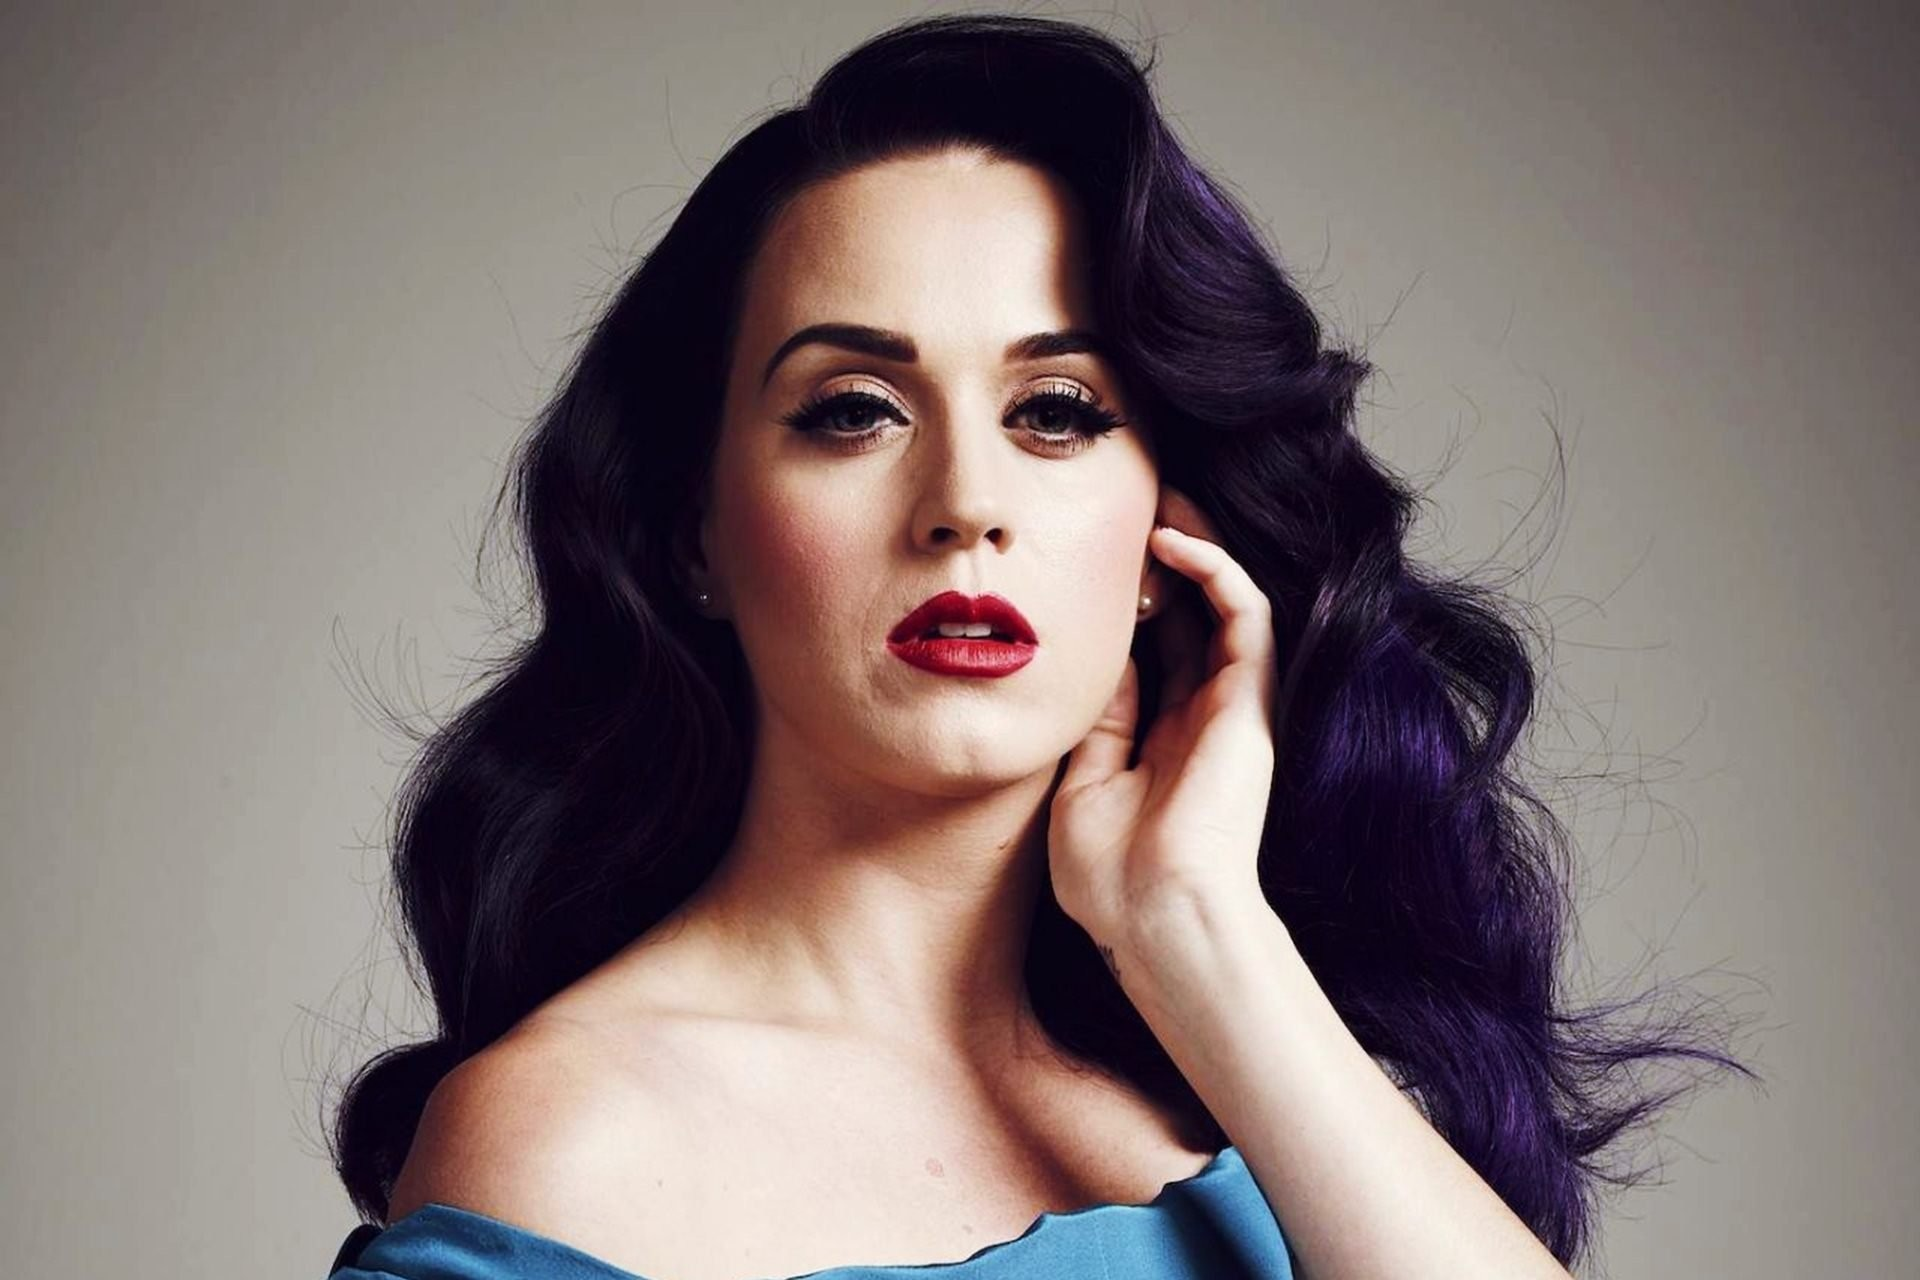 Katy Perry Wallpaper 2018 67 Images